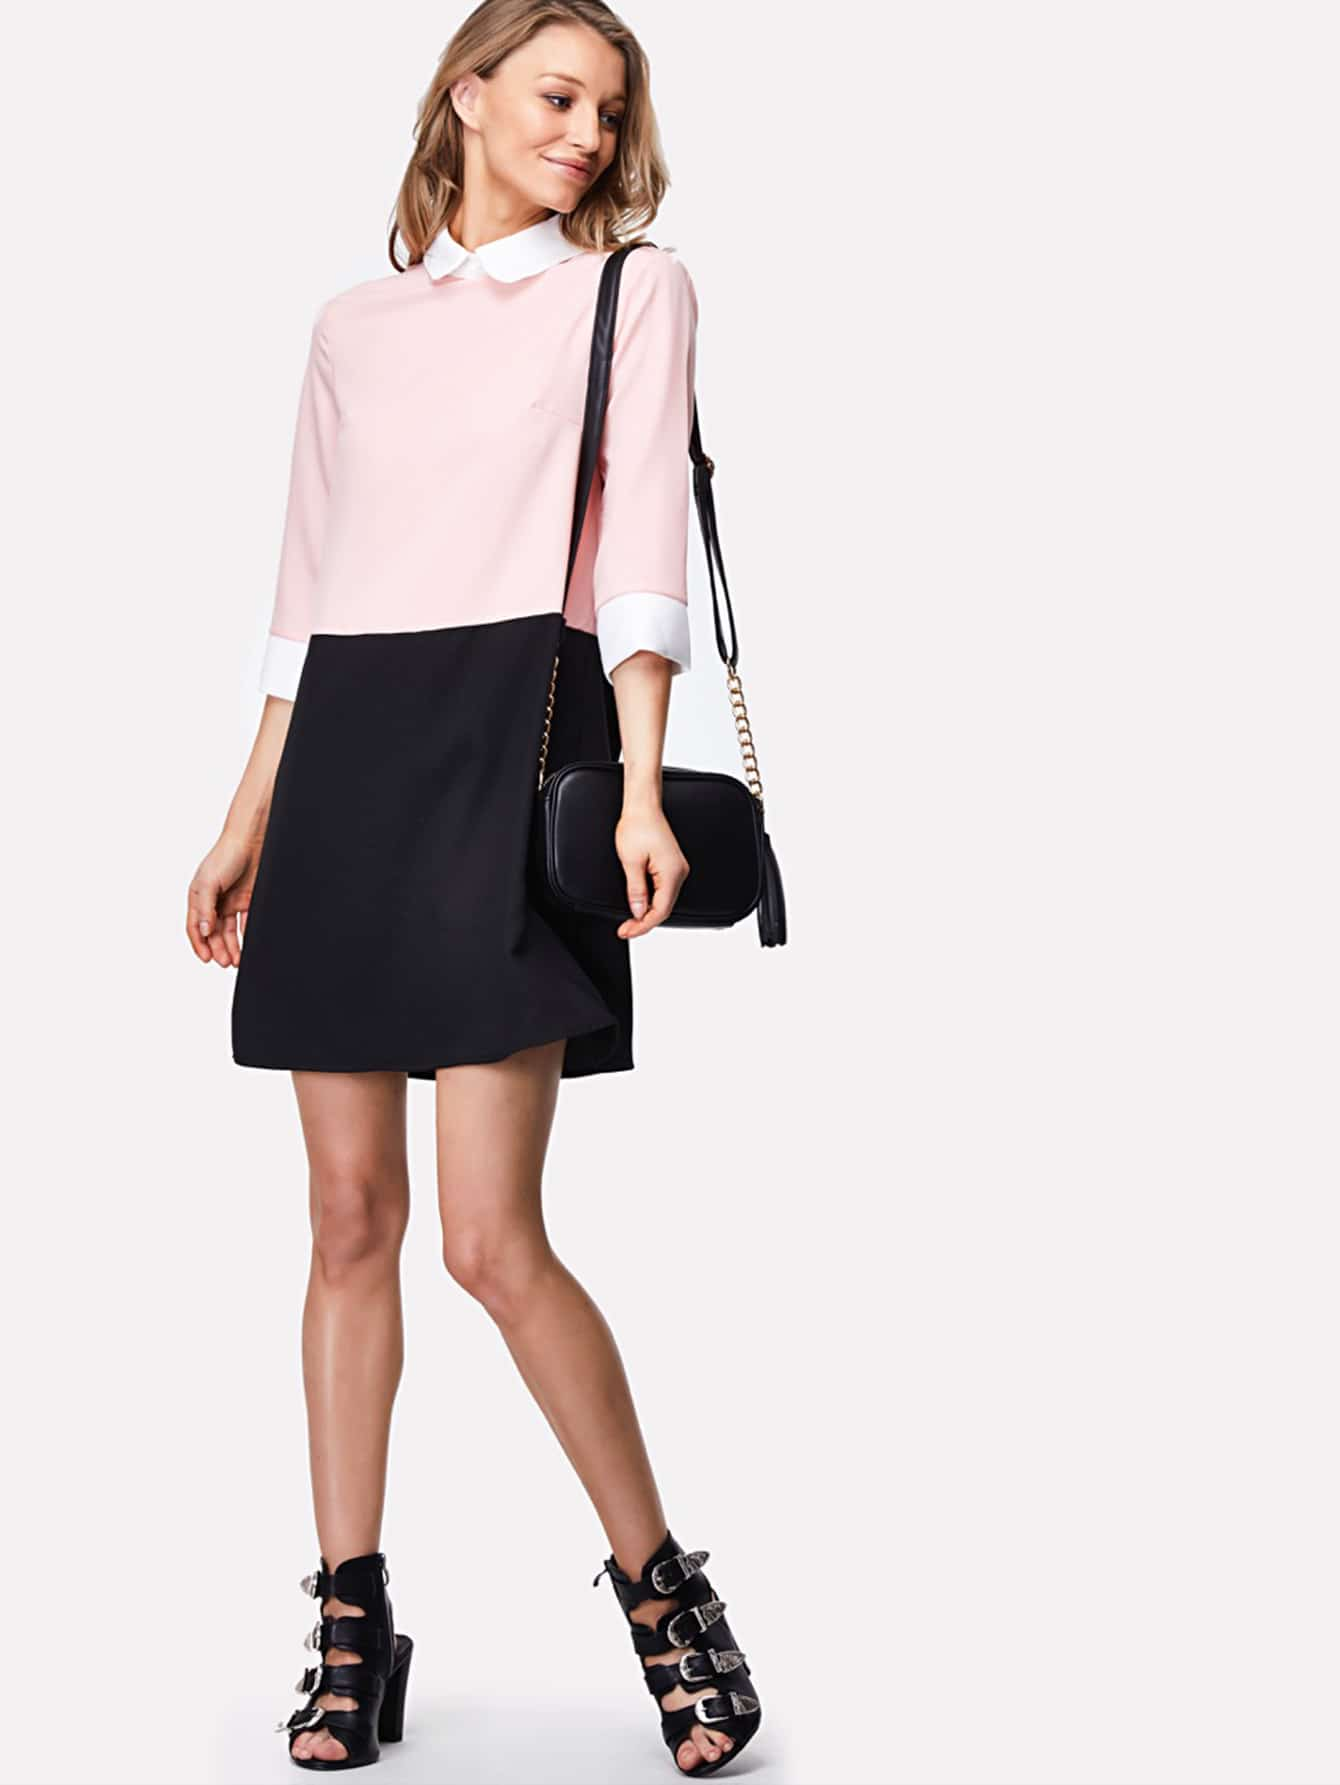 Contrast Collar And Cuff Color Block Dress lace collar and cuff tunic dress